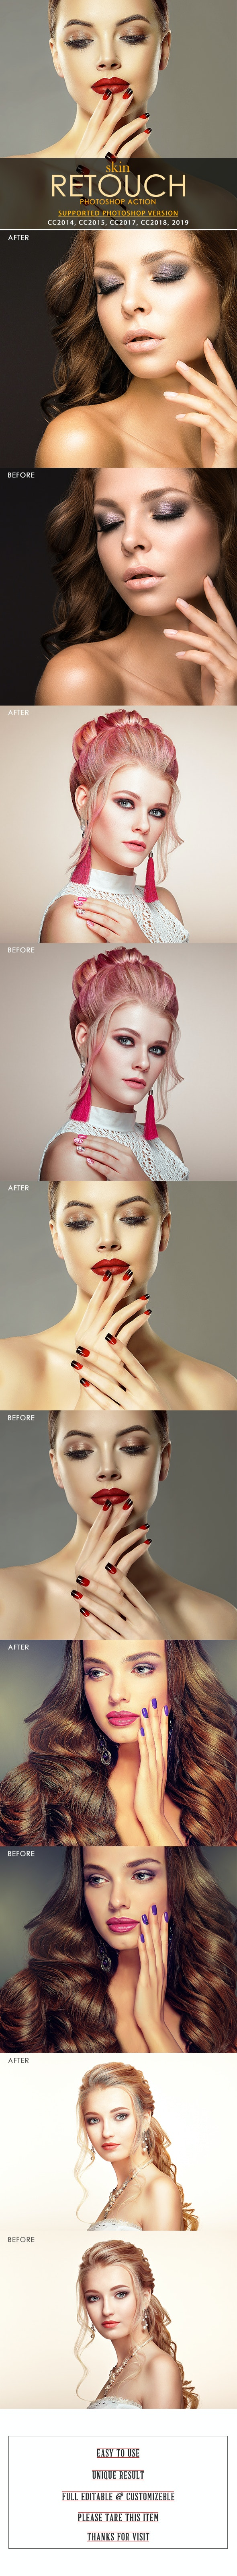 Skin Retouch Photoshop Action - Actions Photoshop